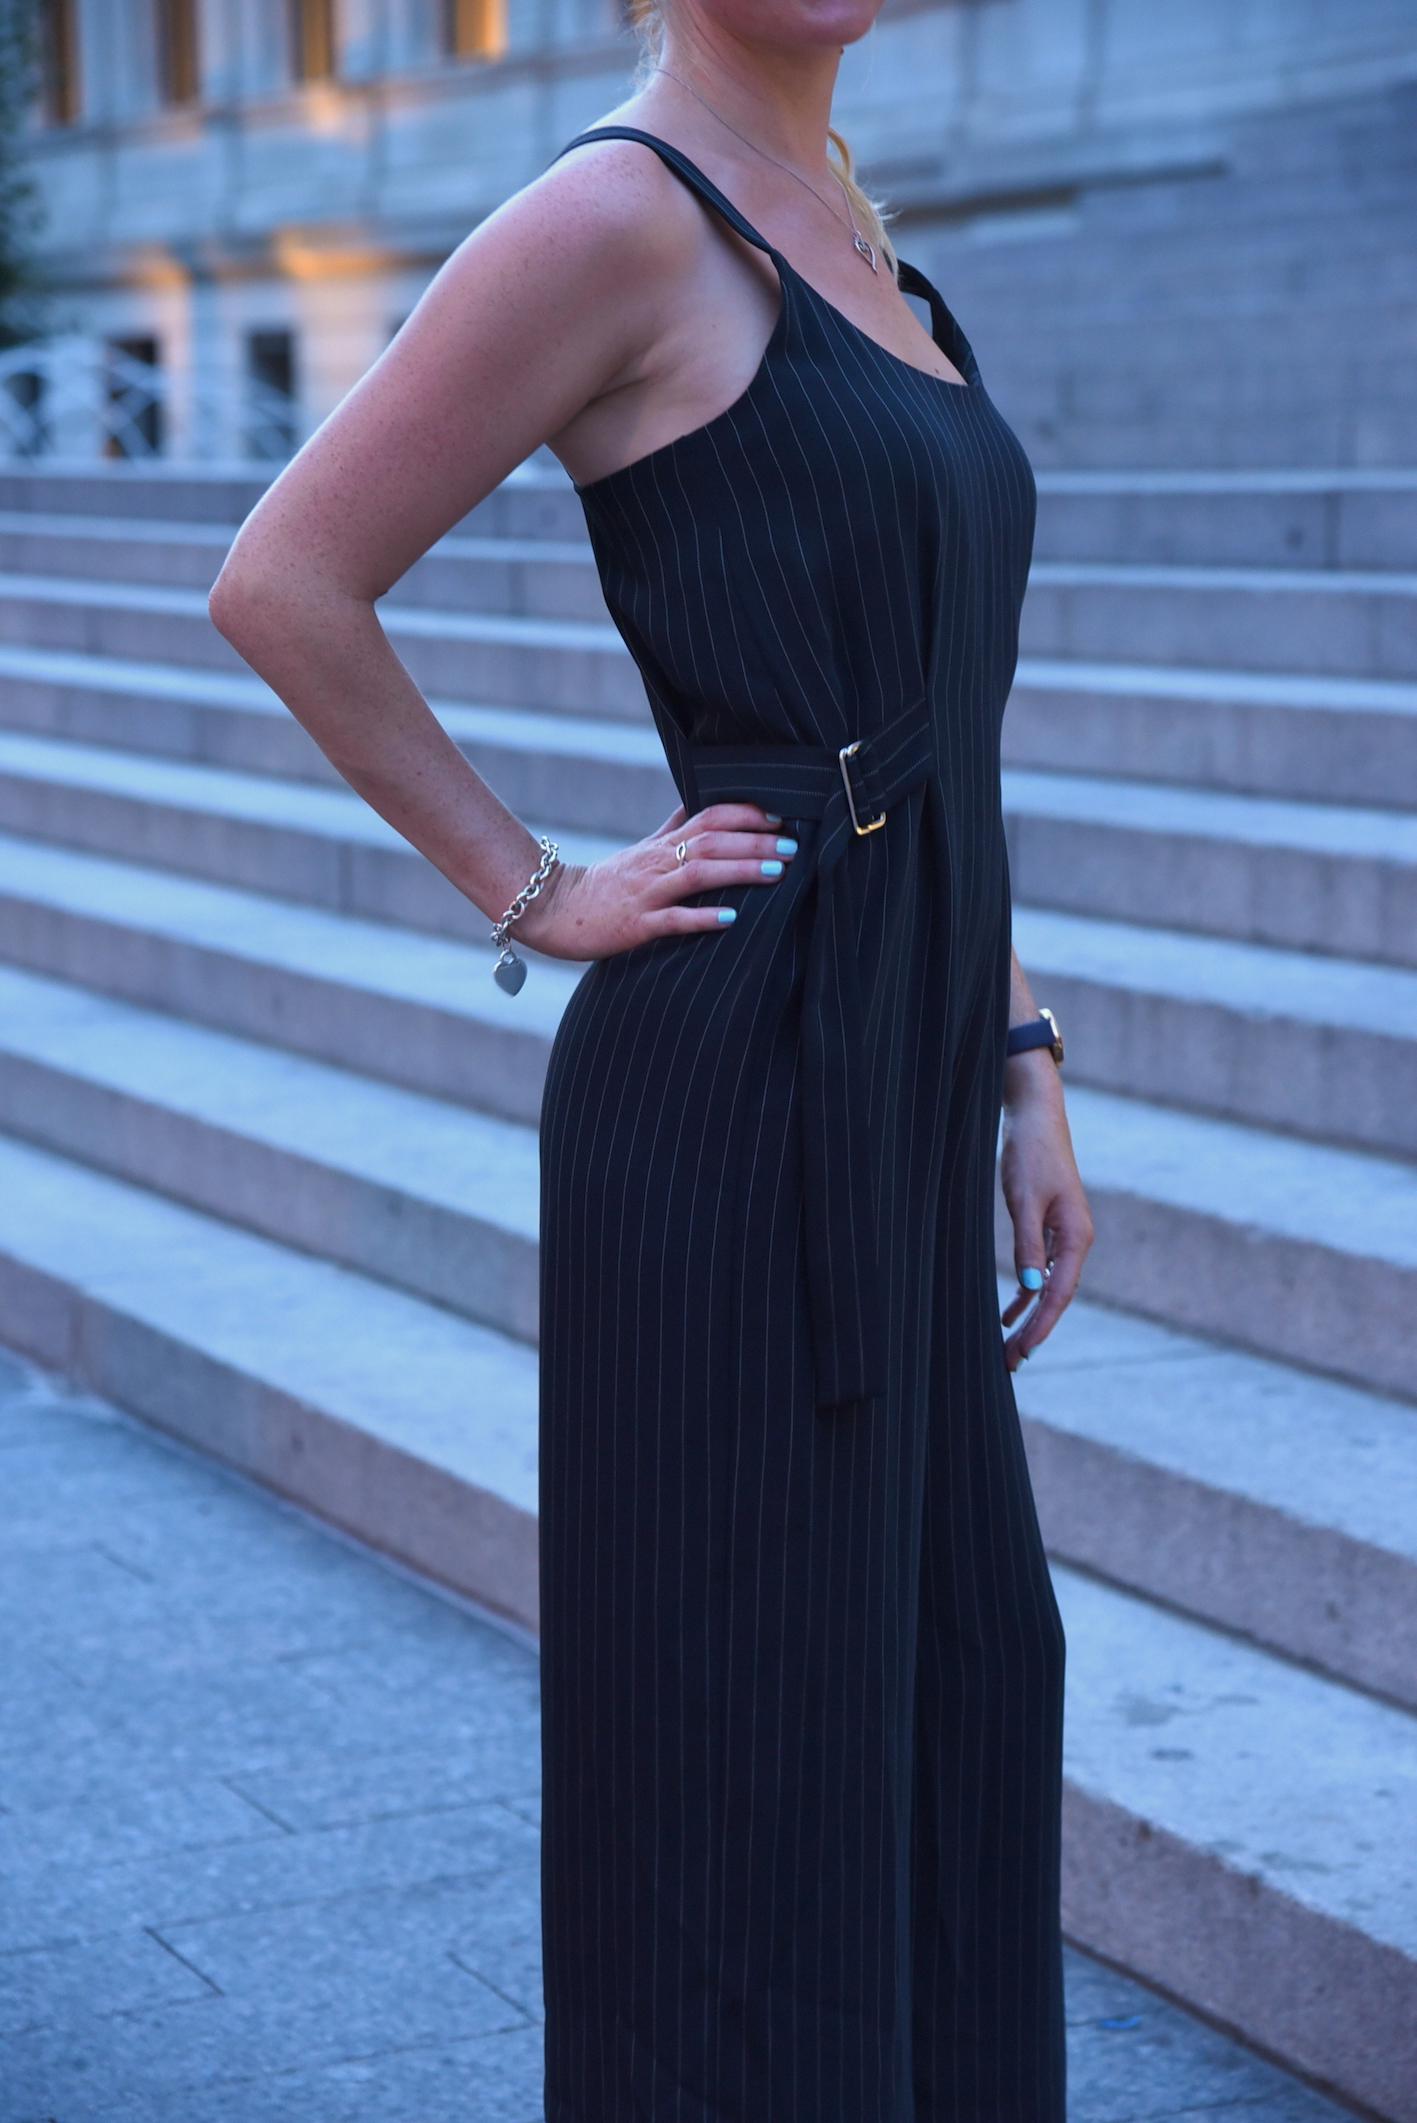 Topshop style jumpsuit fashion blogger look new york city